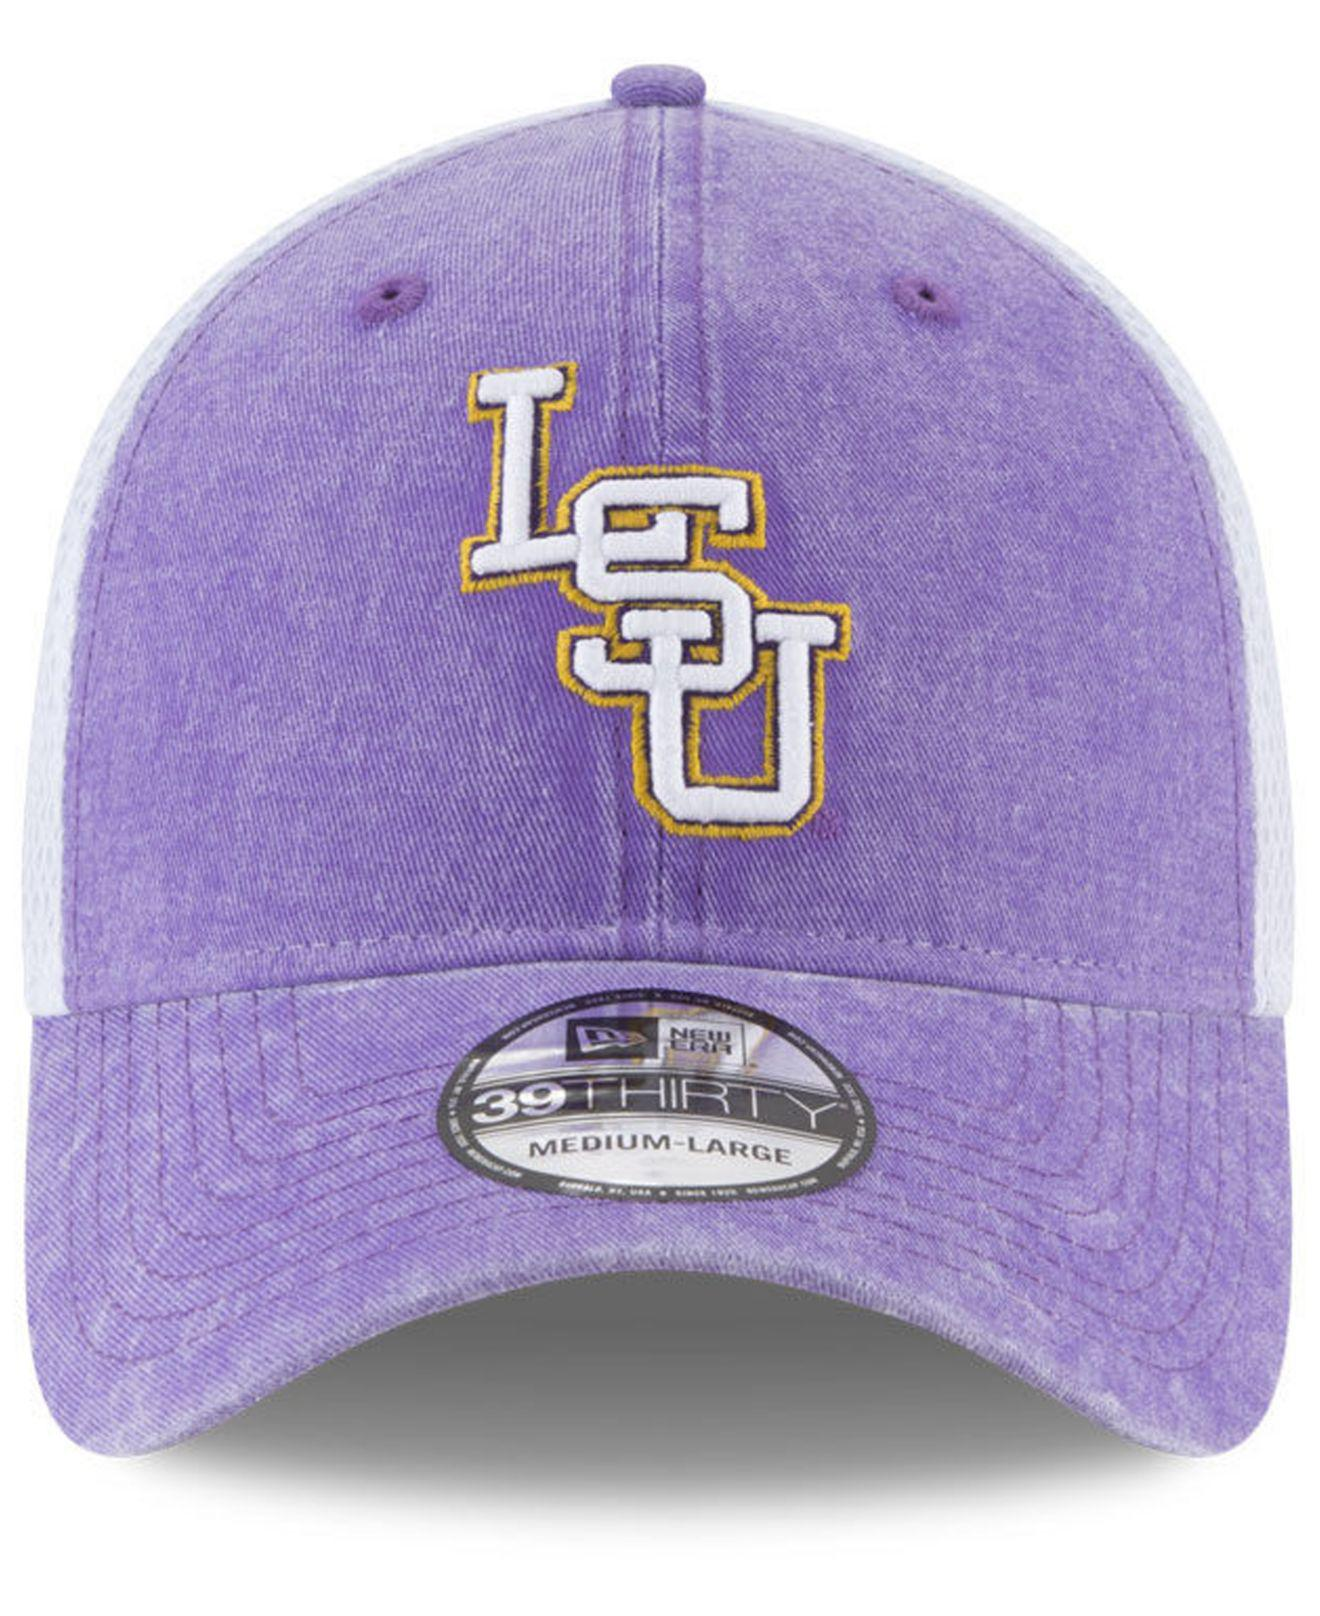 size 40 3740f 07b6c Lyst - KTZ Lsu Tigers Washed Neo 39thirty Cap in Purple for Men